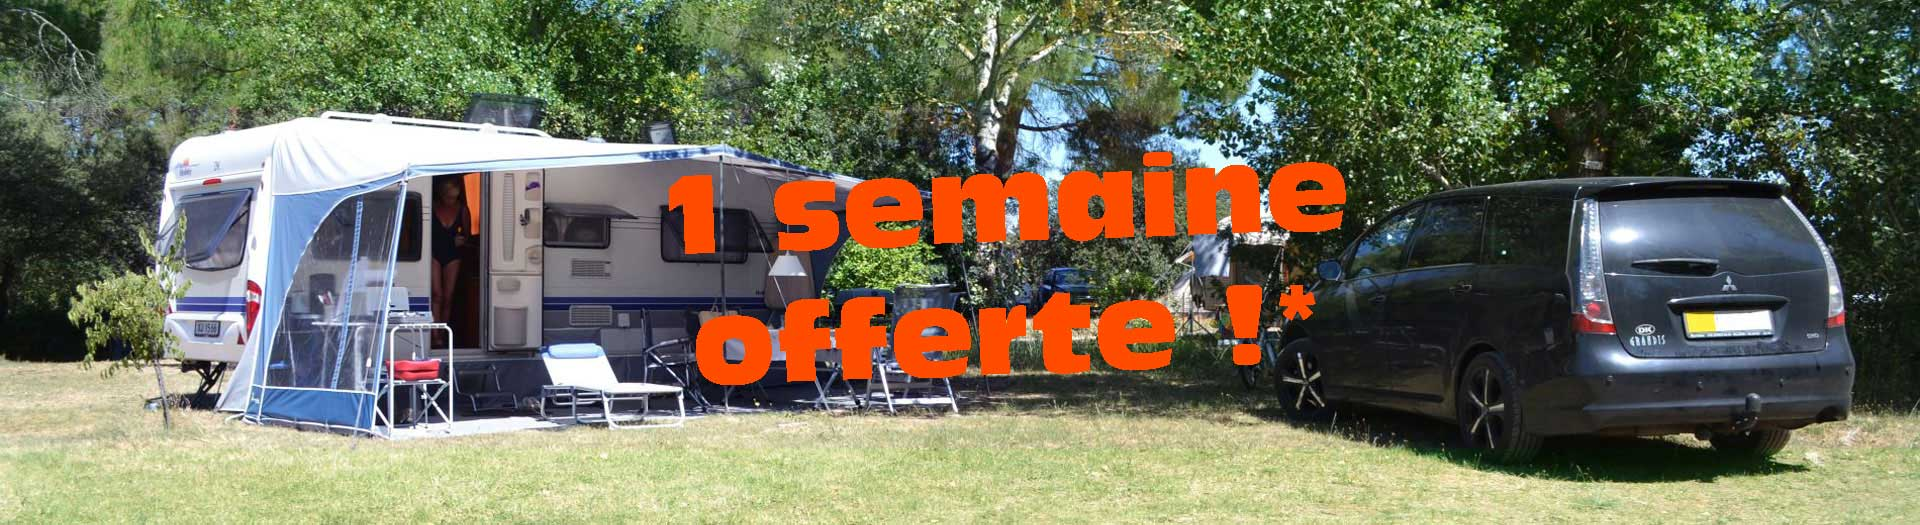 camping pas cher location pont du gard offre speciale. Black Bedroom Furniture Sets. Home Design Ideas